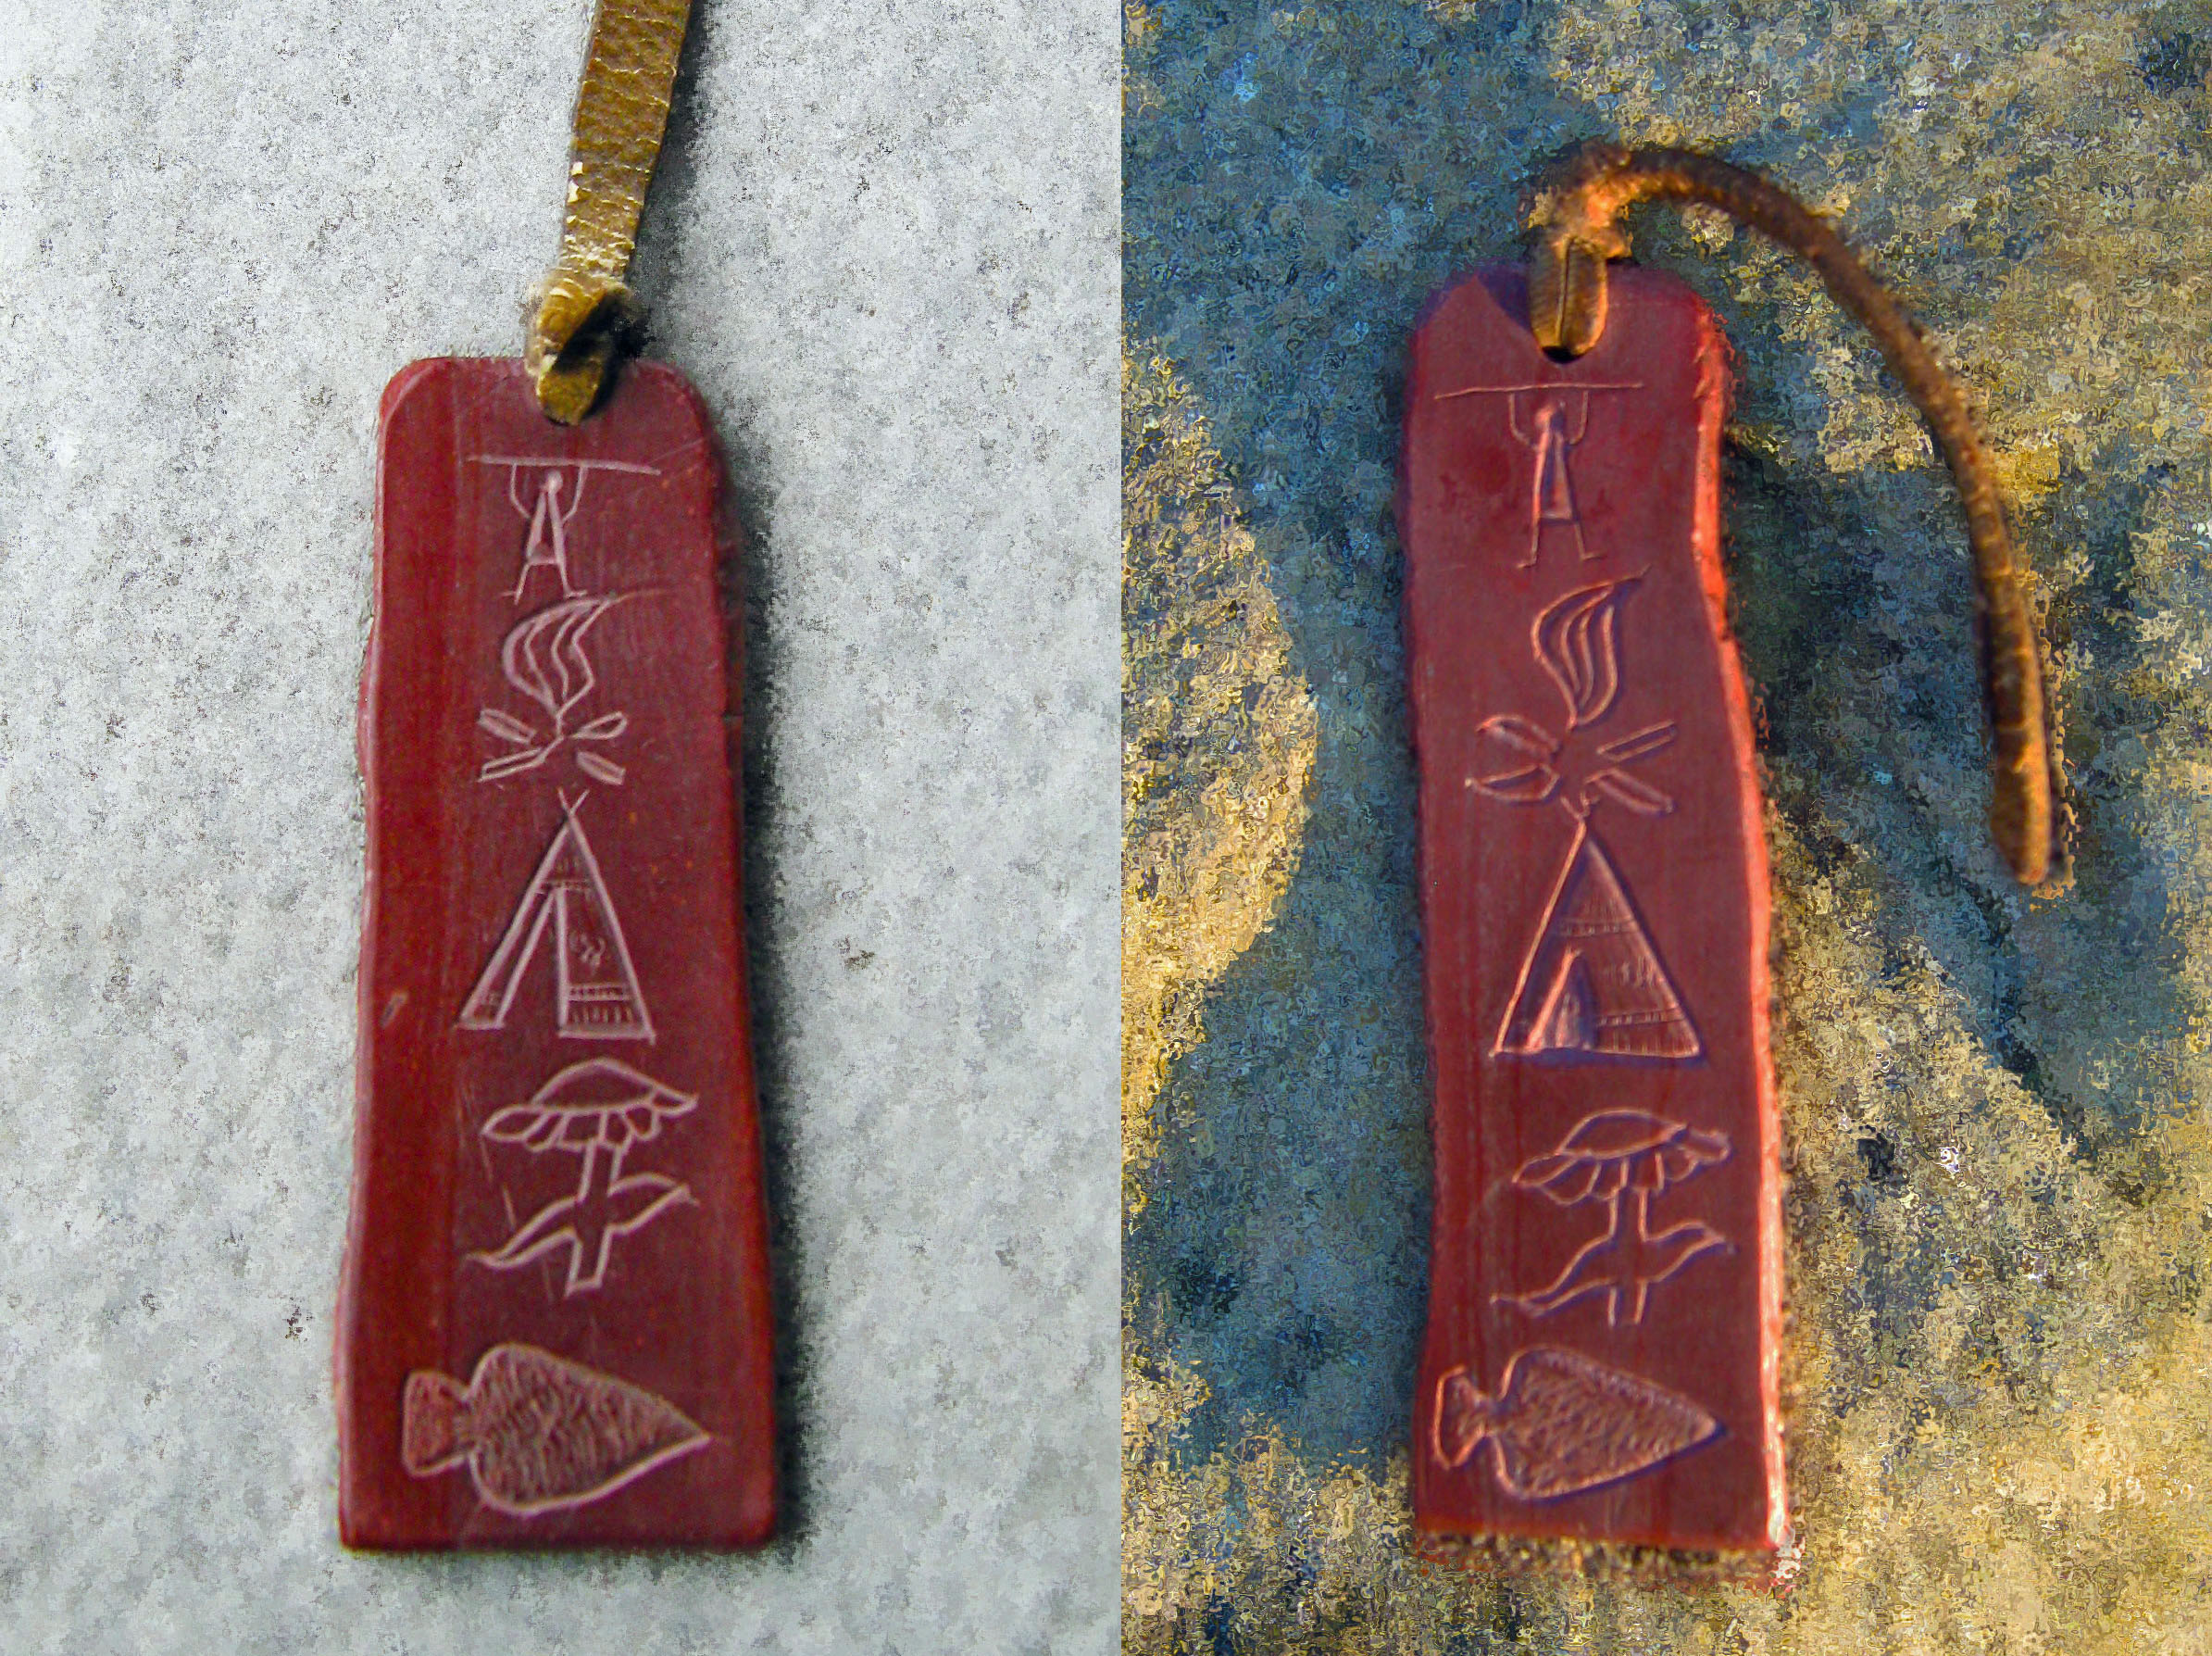 Pipestone tokens from the 1920s